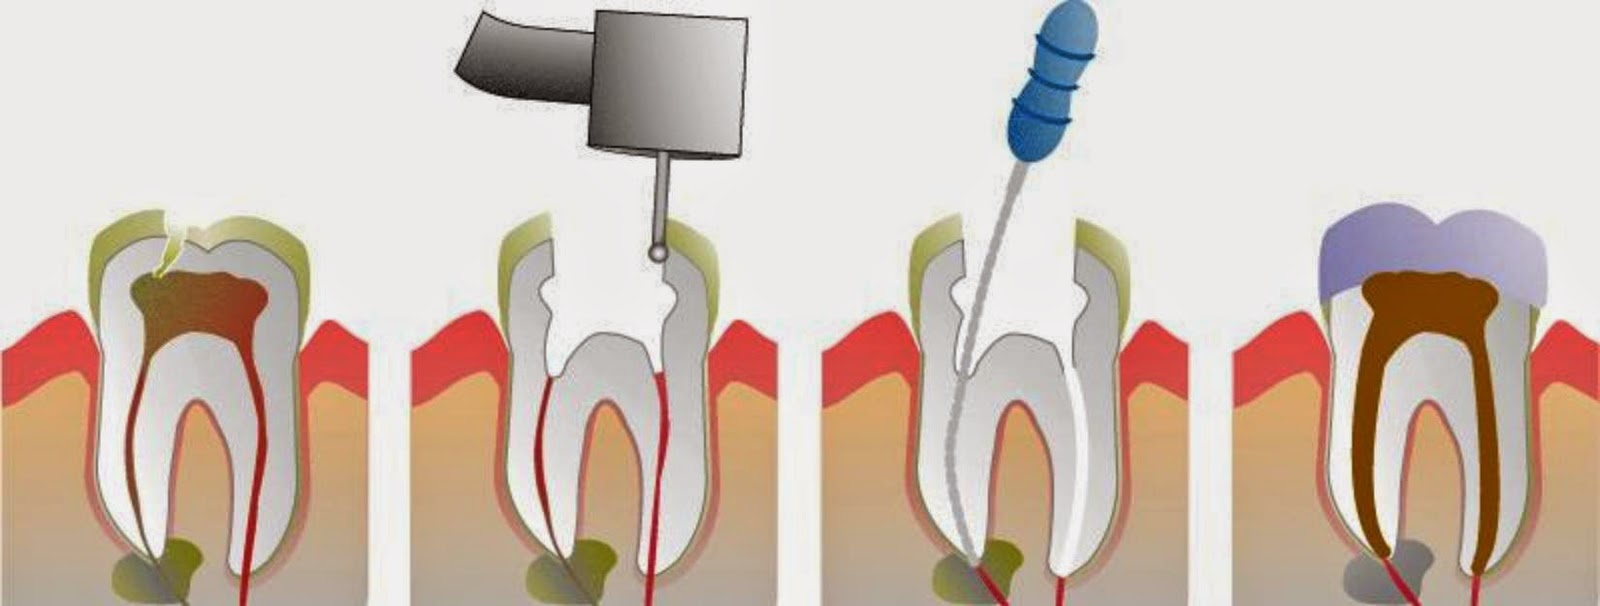 steps in root canal tratment The root canal system is located in the roots of each of your teeth if it becomes infected, you may need root canal treatment to remove the bacteria and save the tooth.